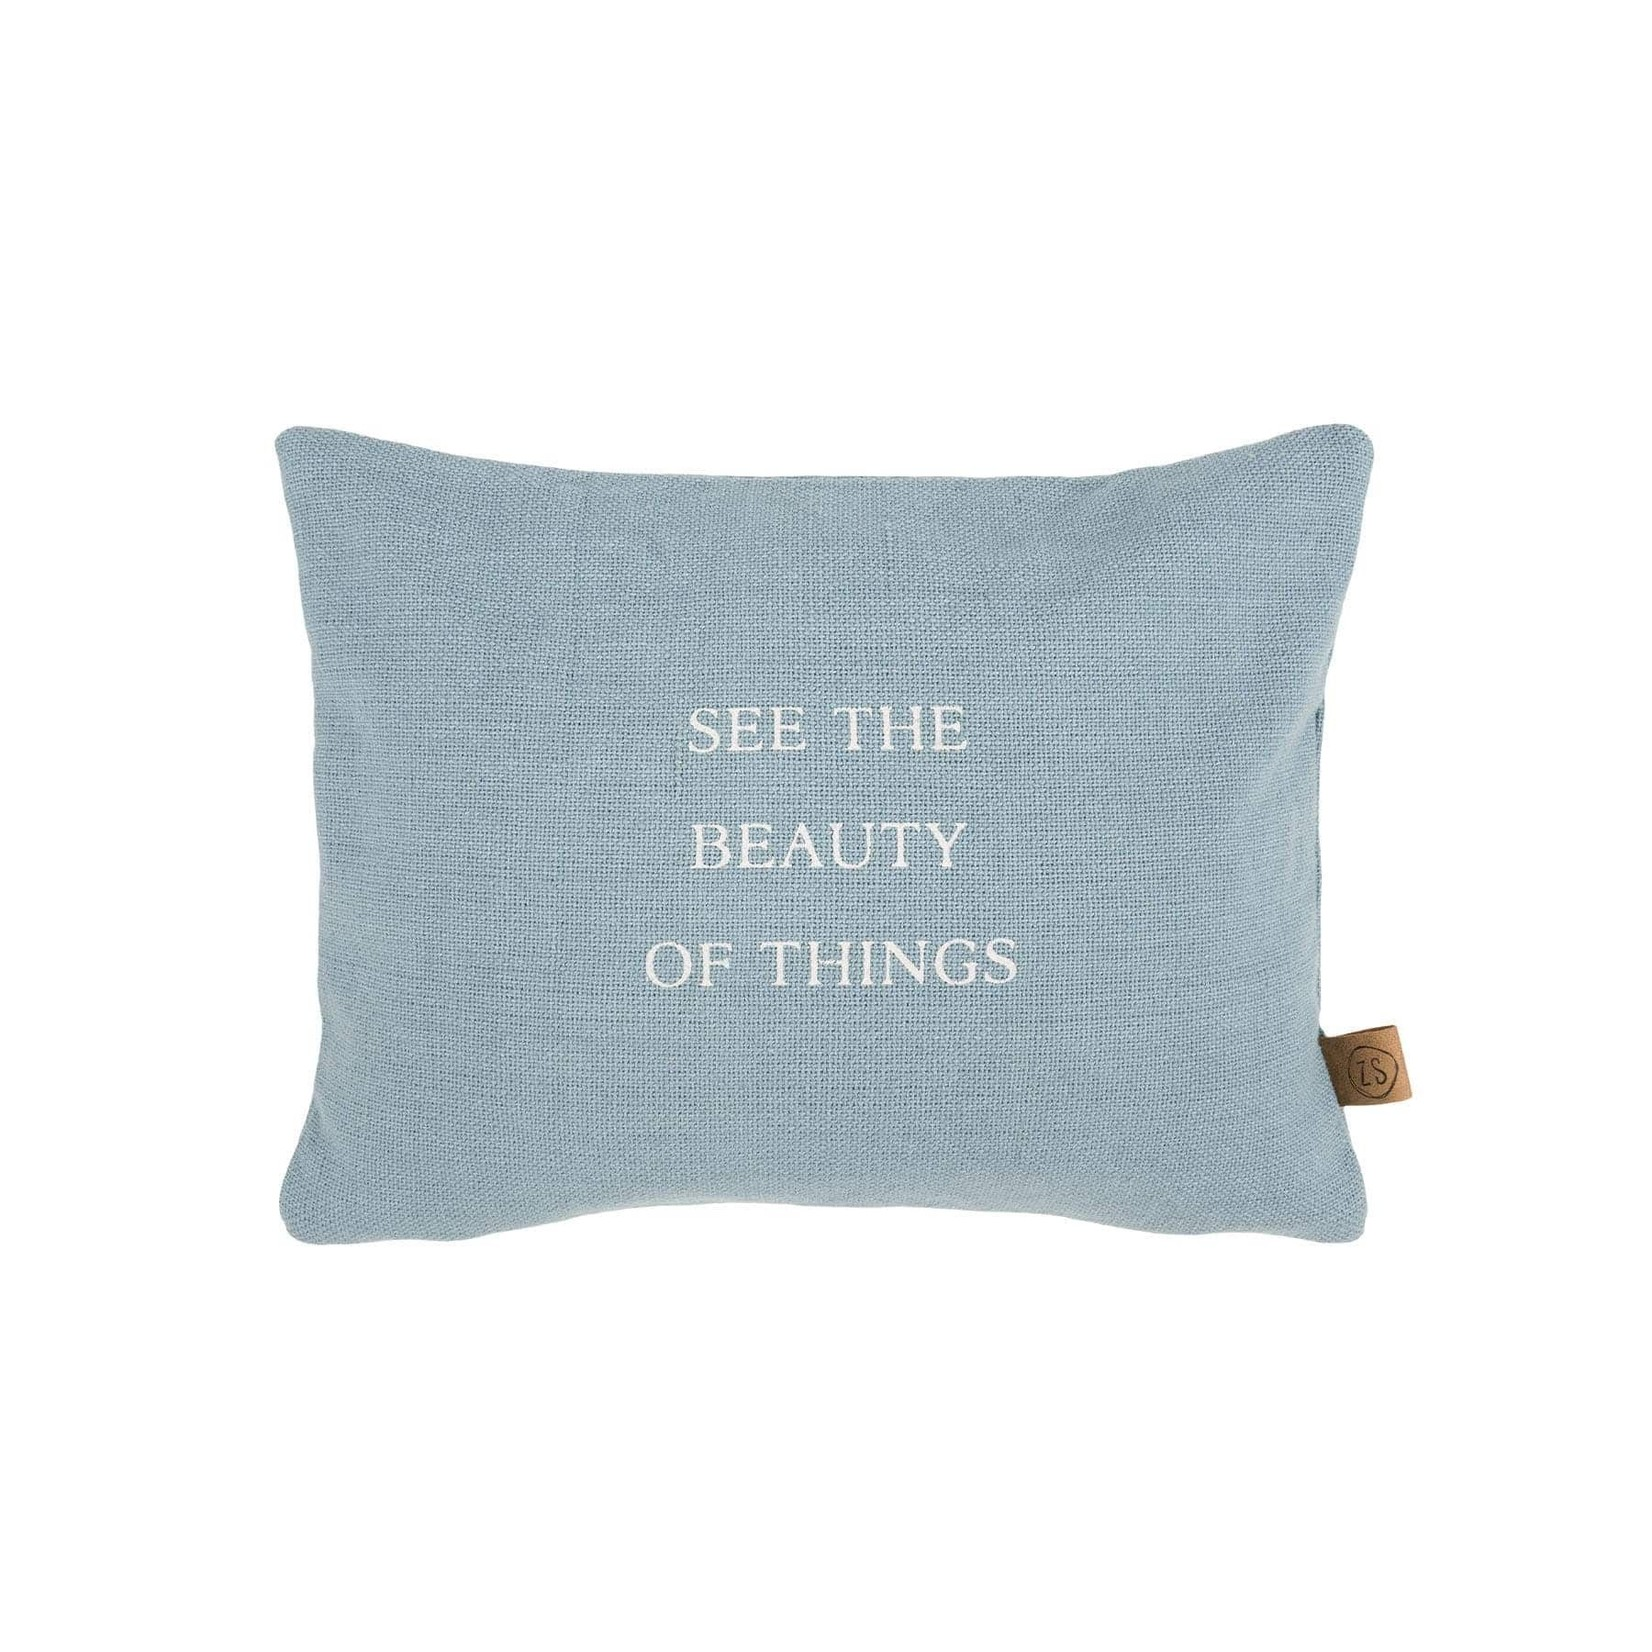 """Zusss Kussen - """"See the beauty of things"""" - grijs-blauw - 35x25cm"""